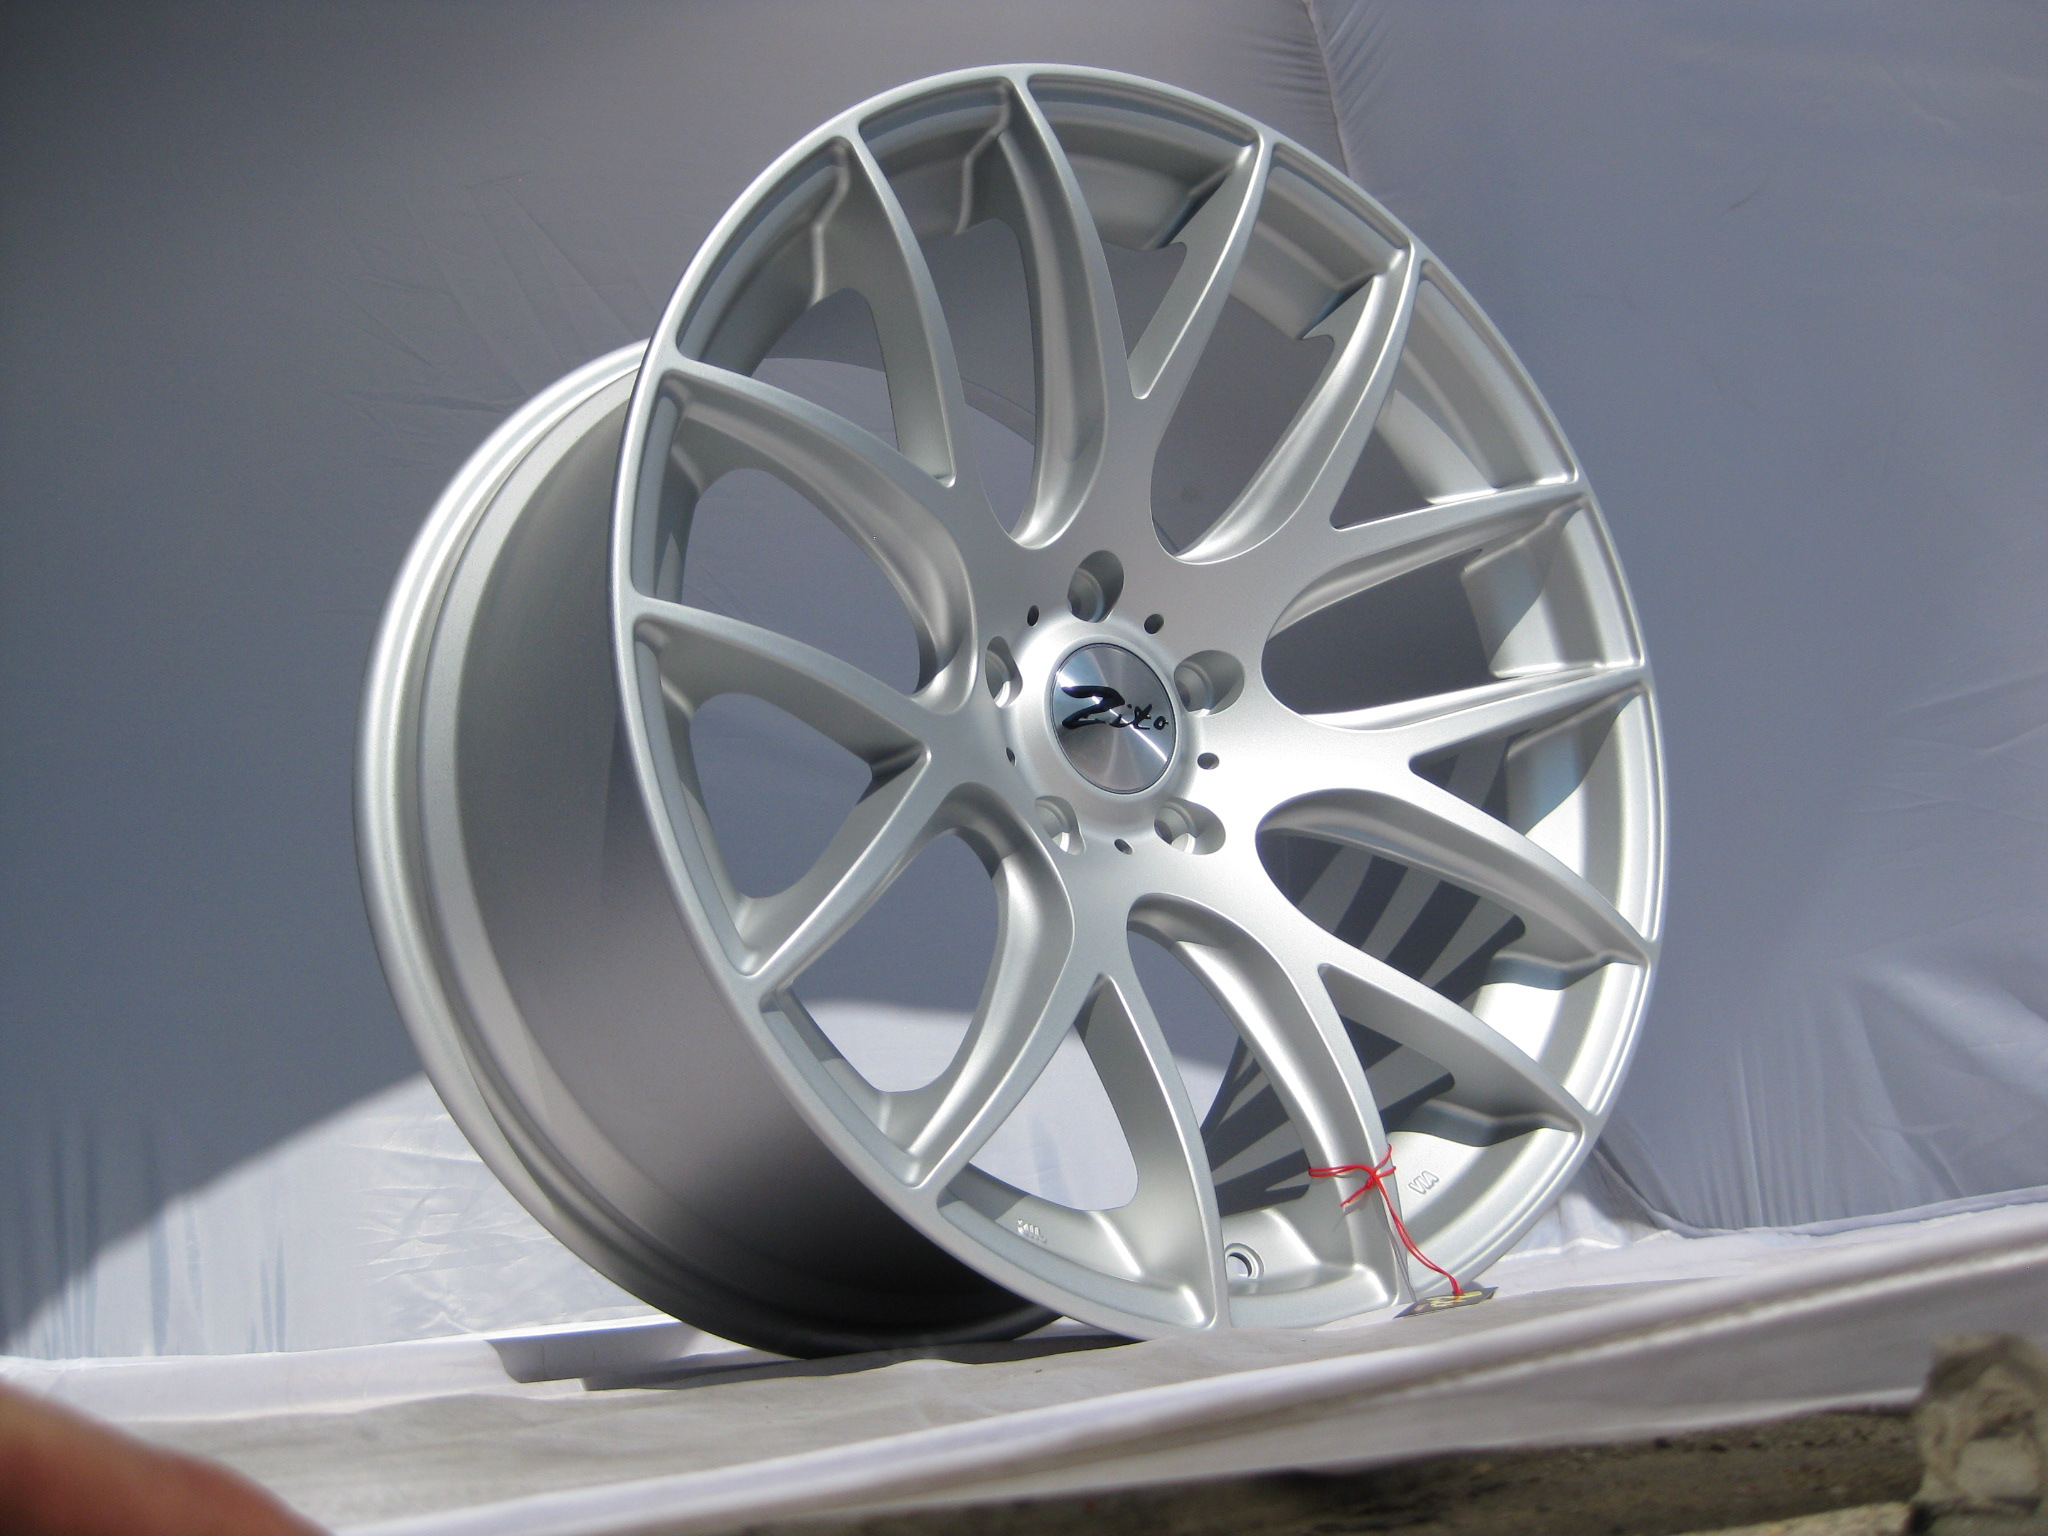 New 20 Quot Zito 935 Csl Gts Staggered Alloys Finished In Rare